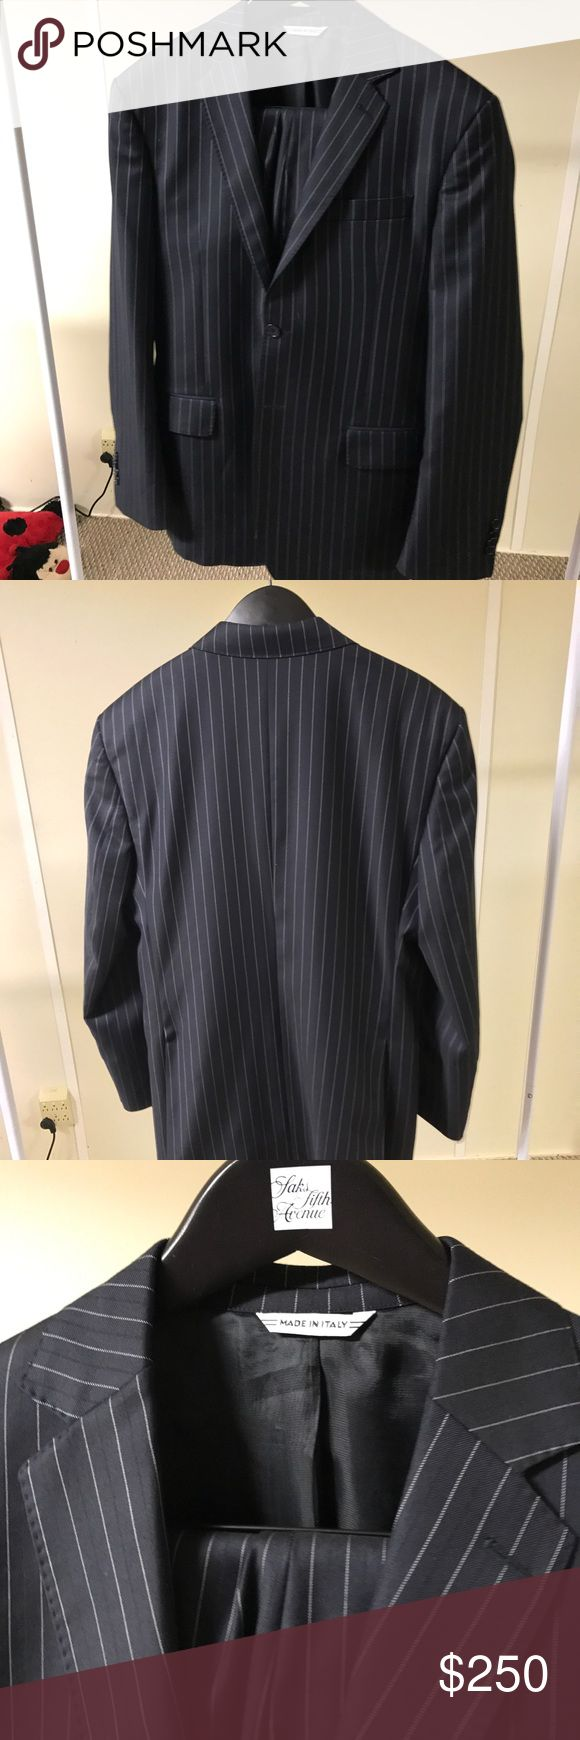 Men's Italian Yves Saint Laurent Navy Suit Made in Italy, Navy Blue with White pin stripes, pick sticking on Notch Lapel, double Vent 2 Button. Flat front pants (32r x30) IT50r US40r Yves Saint Laurent Suits & Blazers Suits